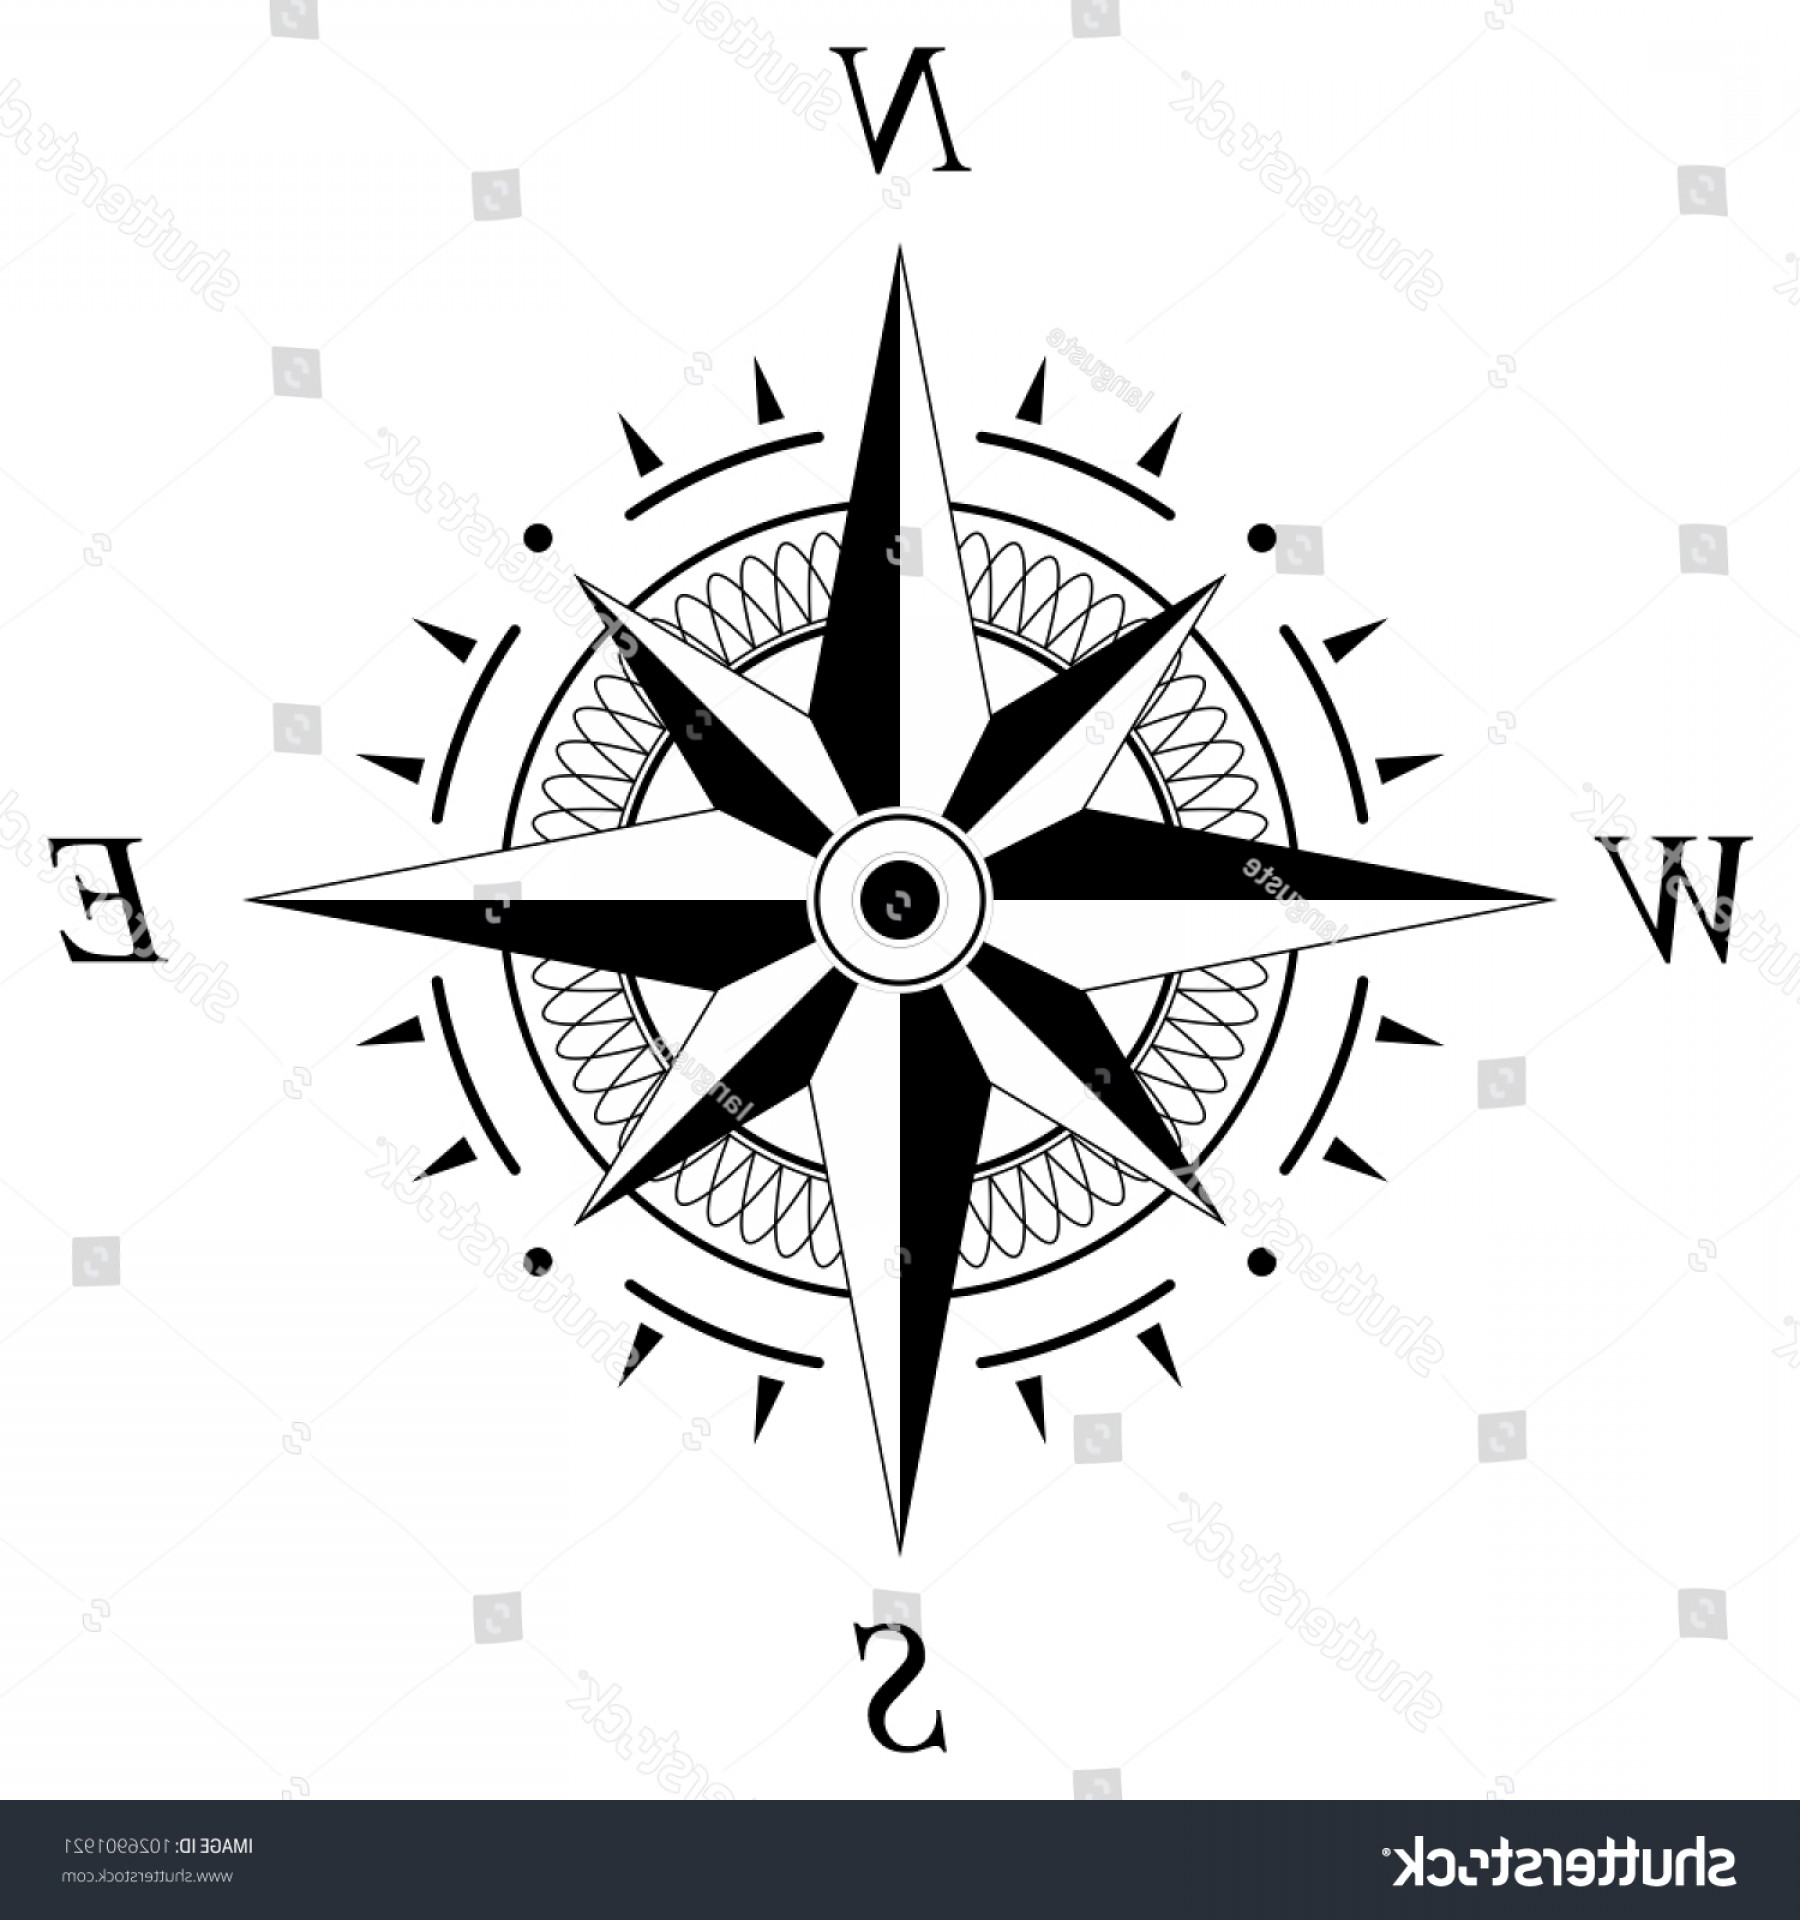 4 Point Nautical Star Vector: Compass Rose Marine Nautical Navigation Geographic